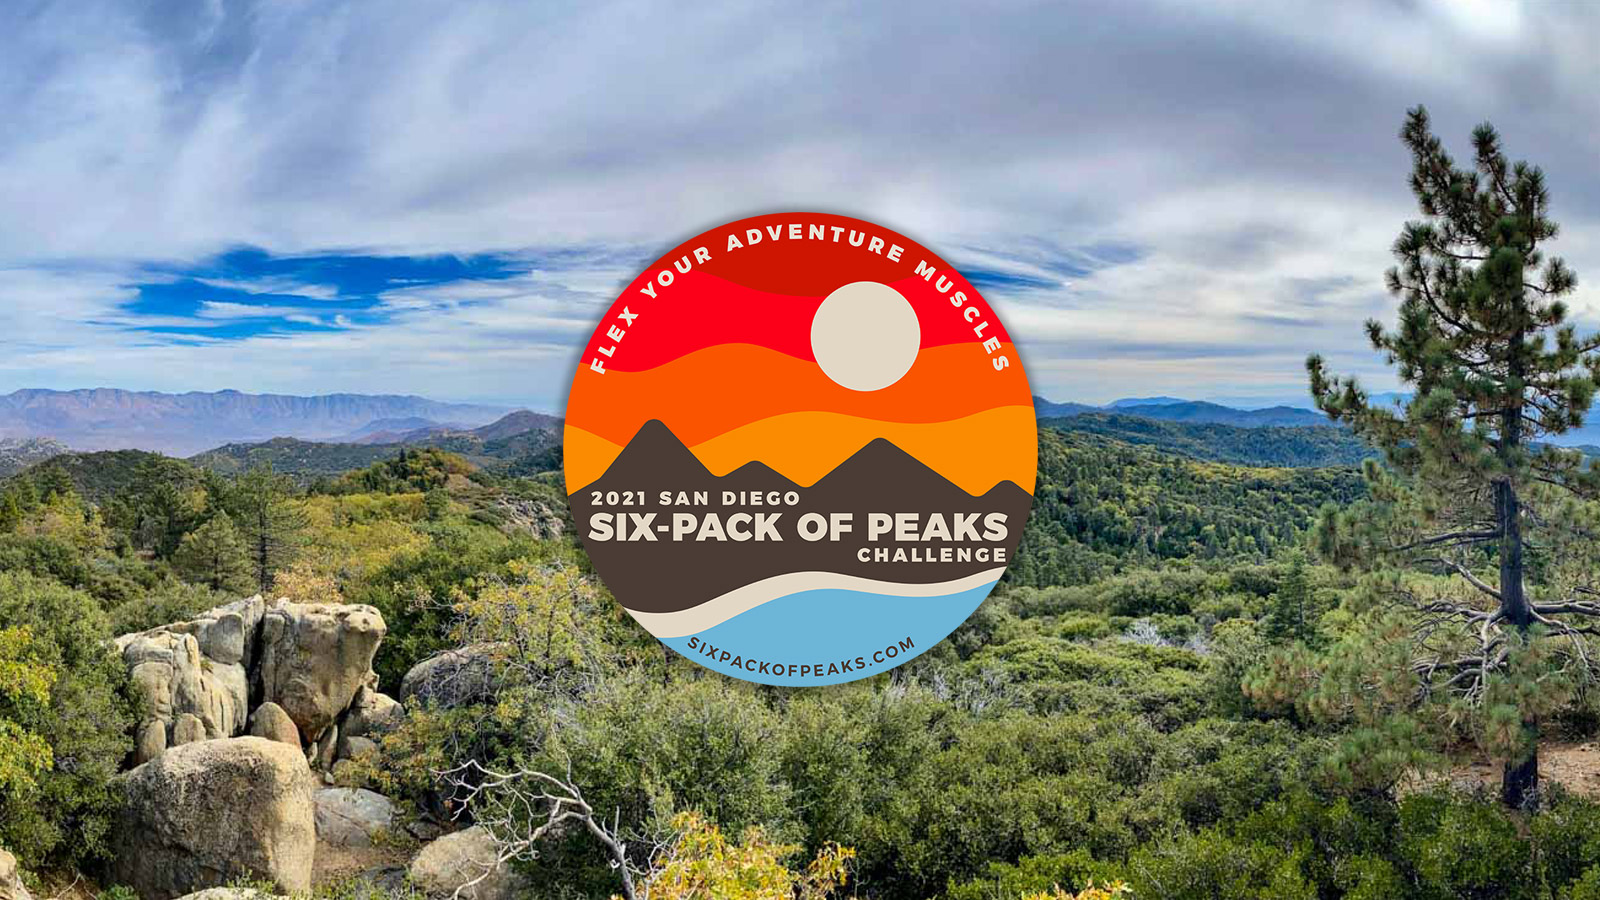 2021 San Diego Six-Pack of Peaks Challenge Discussion Forum